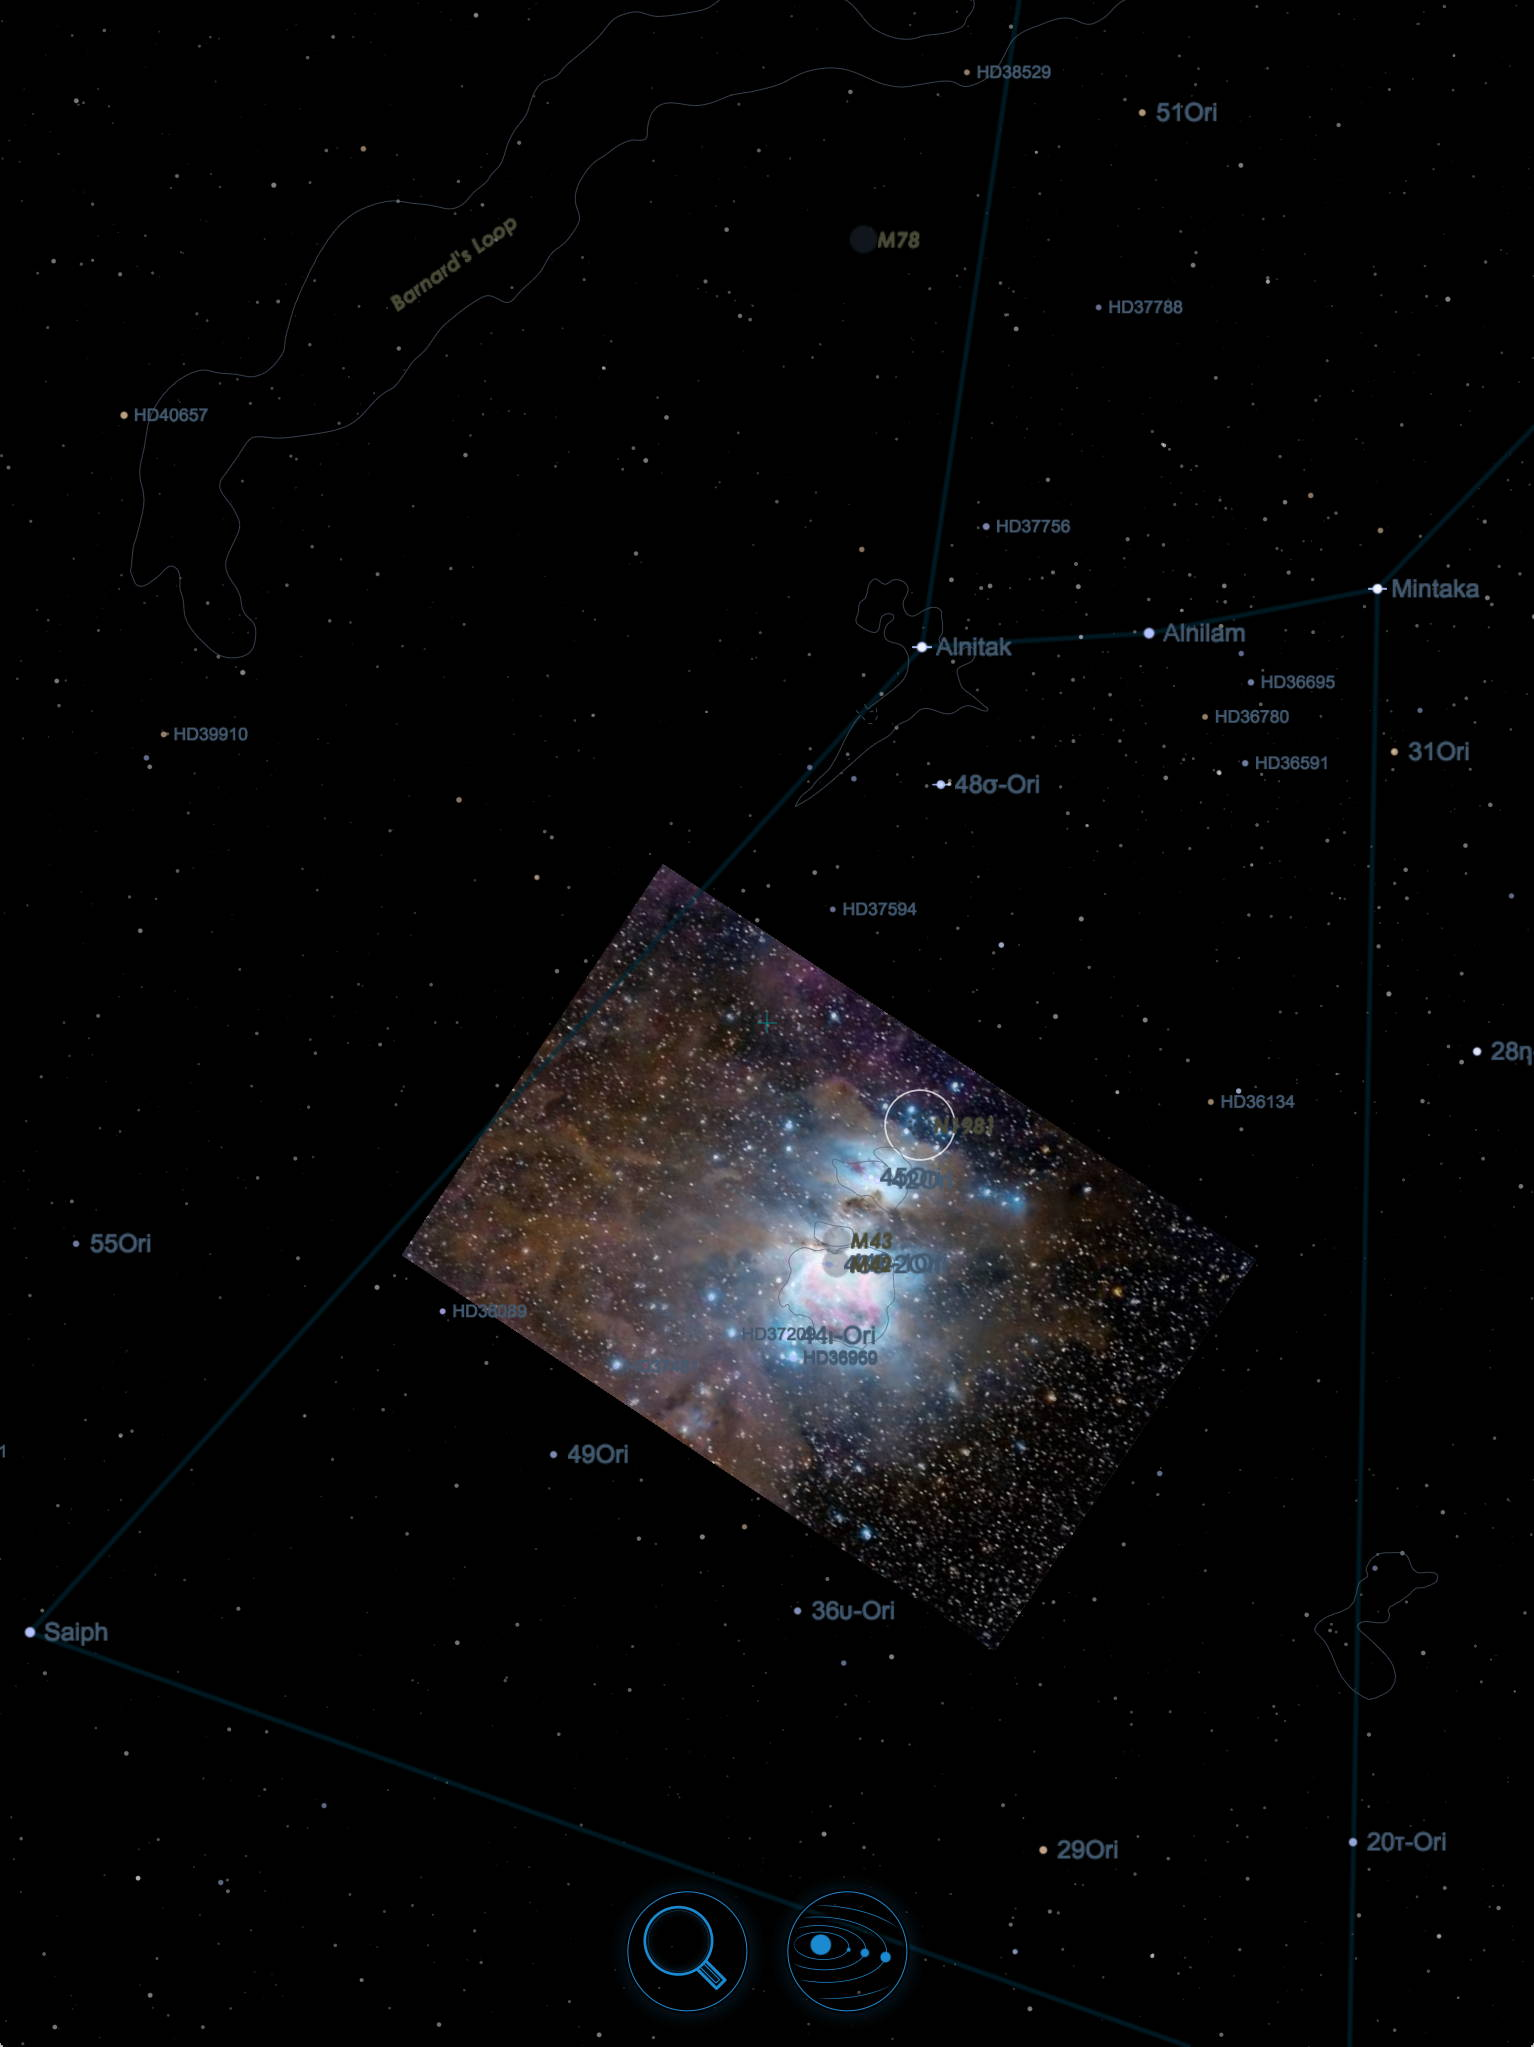 Starmap The Astronomy App - Astronomical map of galaxies in the us